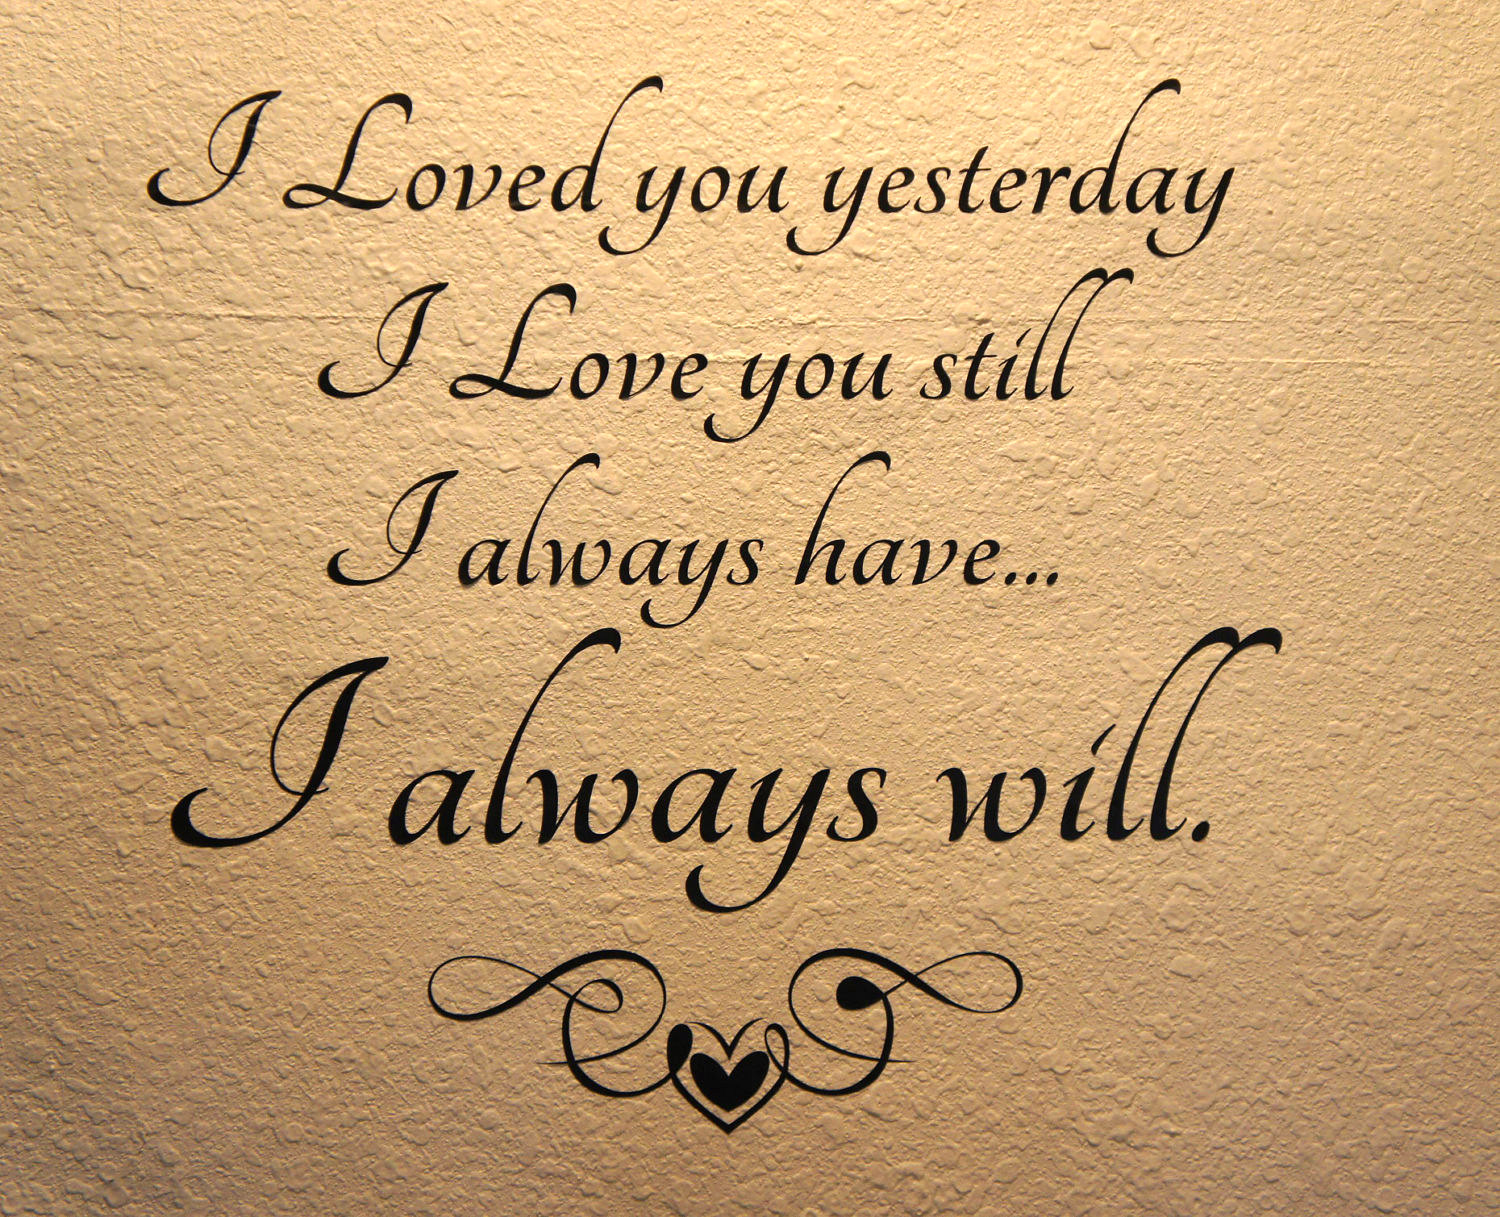 I Love You Quotes For Him 2015 : love-you-quotes-for-him-for-gallery-of-i-love-you-quotes-for-him-2015 ...